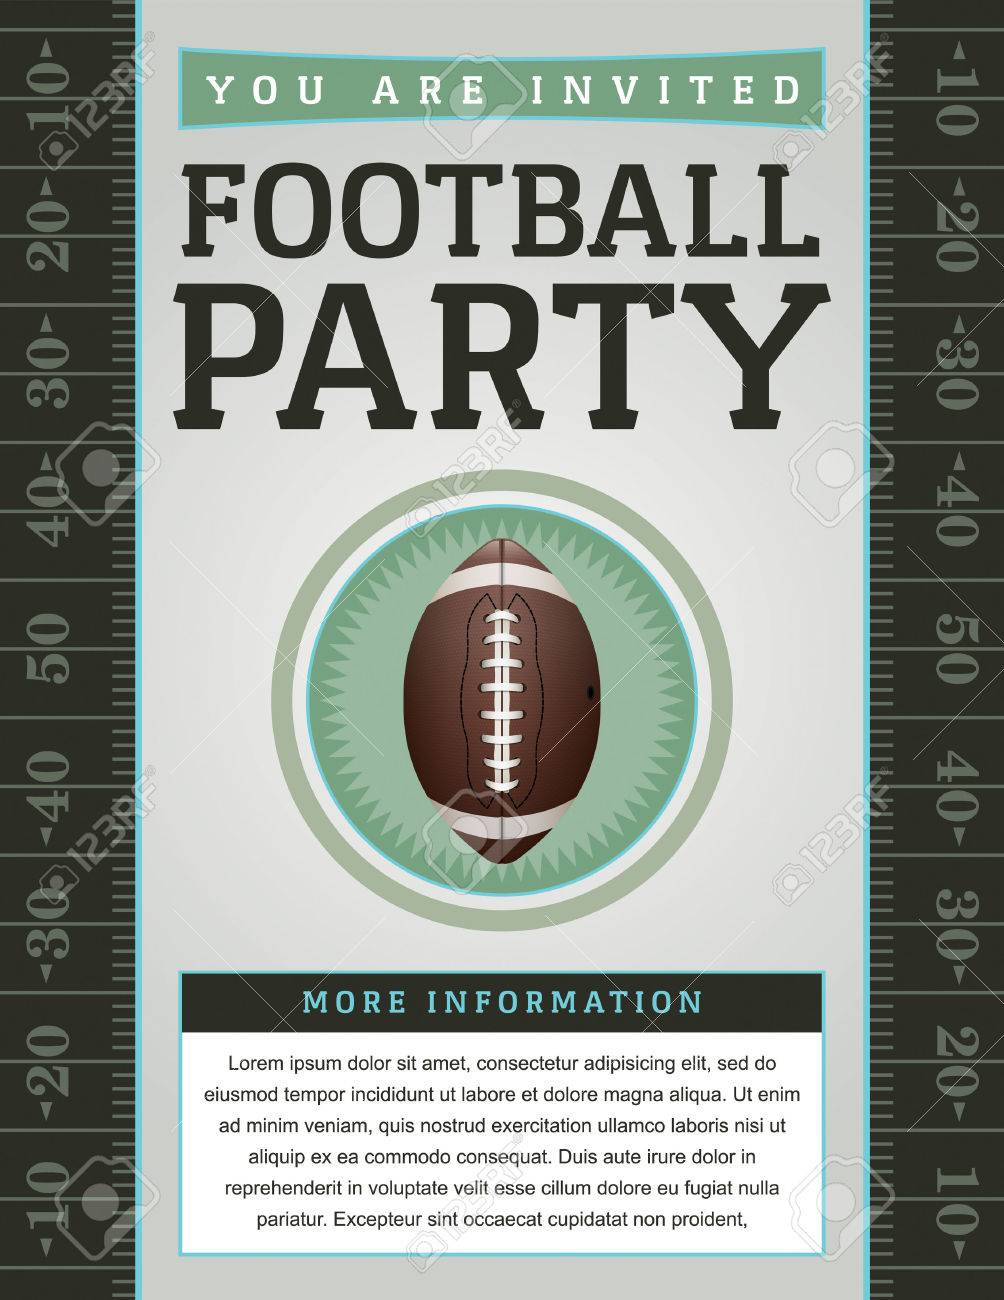 An American Football Flyer Design Perfect For Tailgate Parties